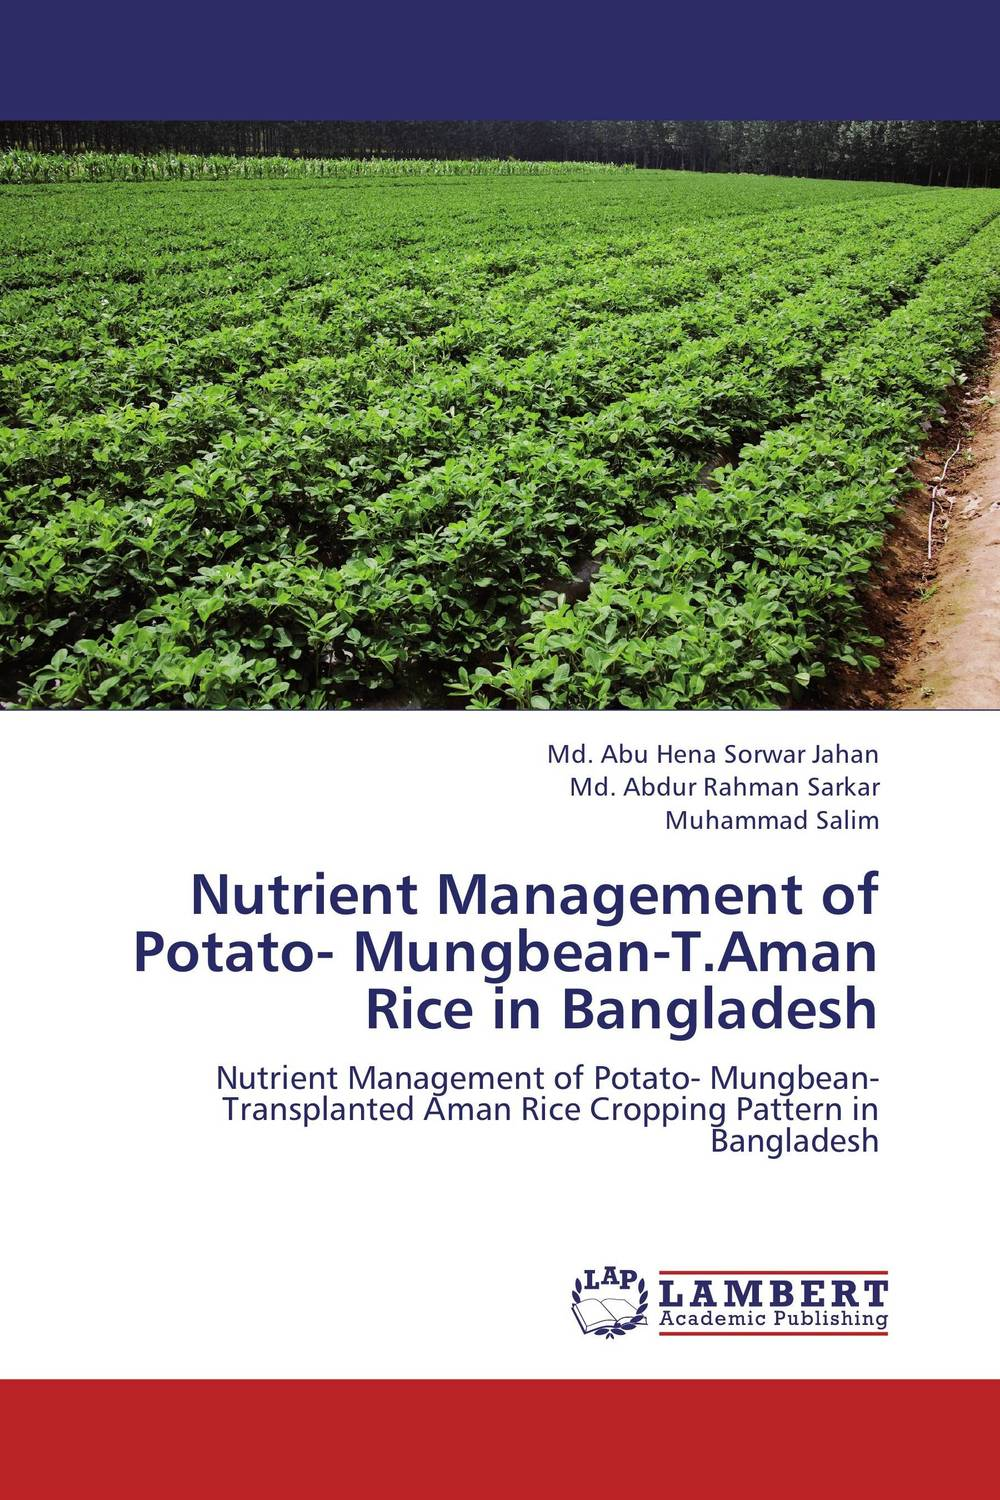 Nutrient Management of Potato- Mungbean-T.Aman Rice in Bangladesh k r k naidu a v ramana and r veeraraghavaiah common vetch management in rice fallow blackgram